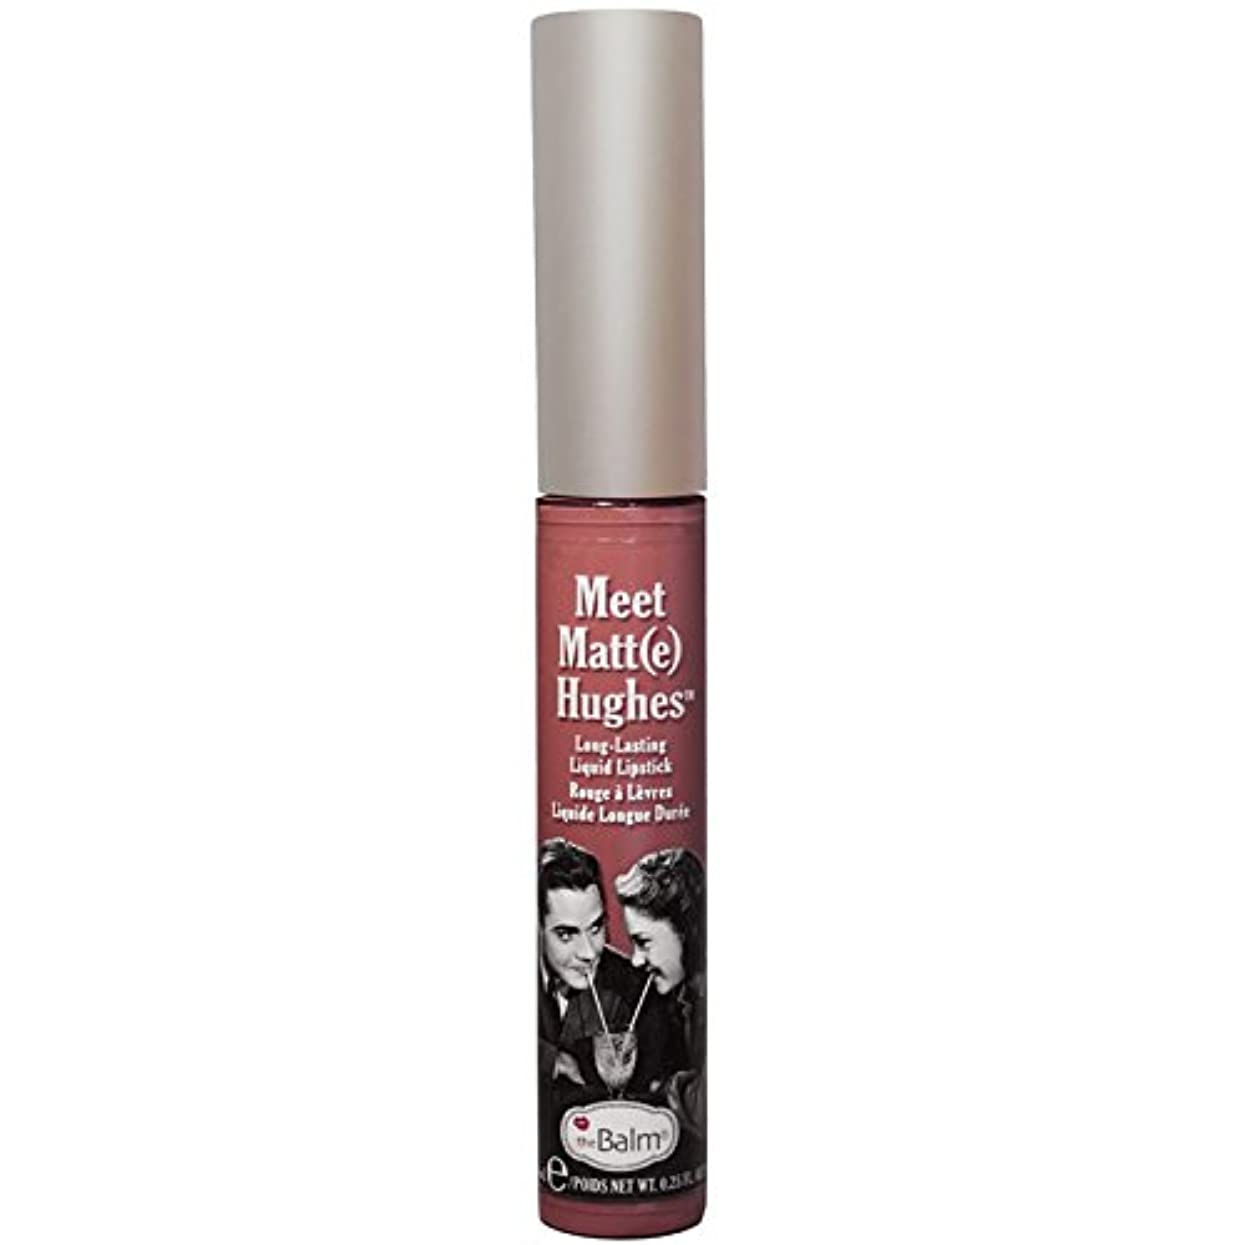 子供時代イノセンス口述theBalm - Meet Matt(e) Hughes Long-Lasting Liquid Lipstick Sincere [並行輸入品]